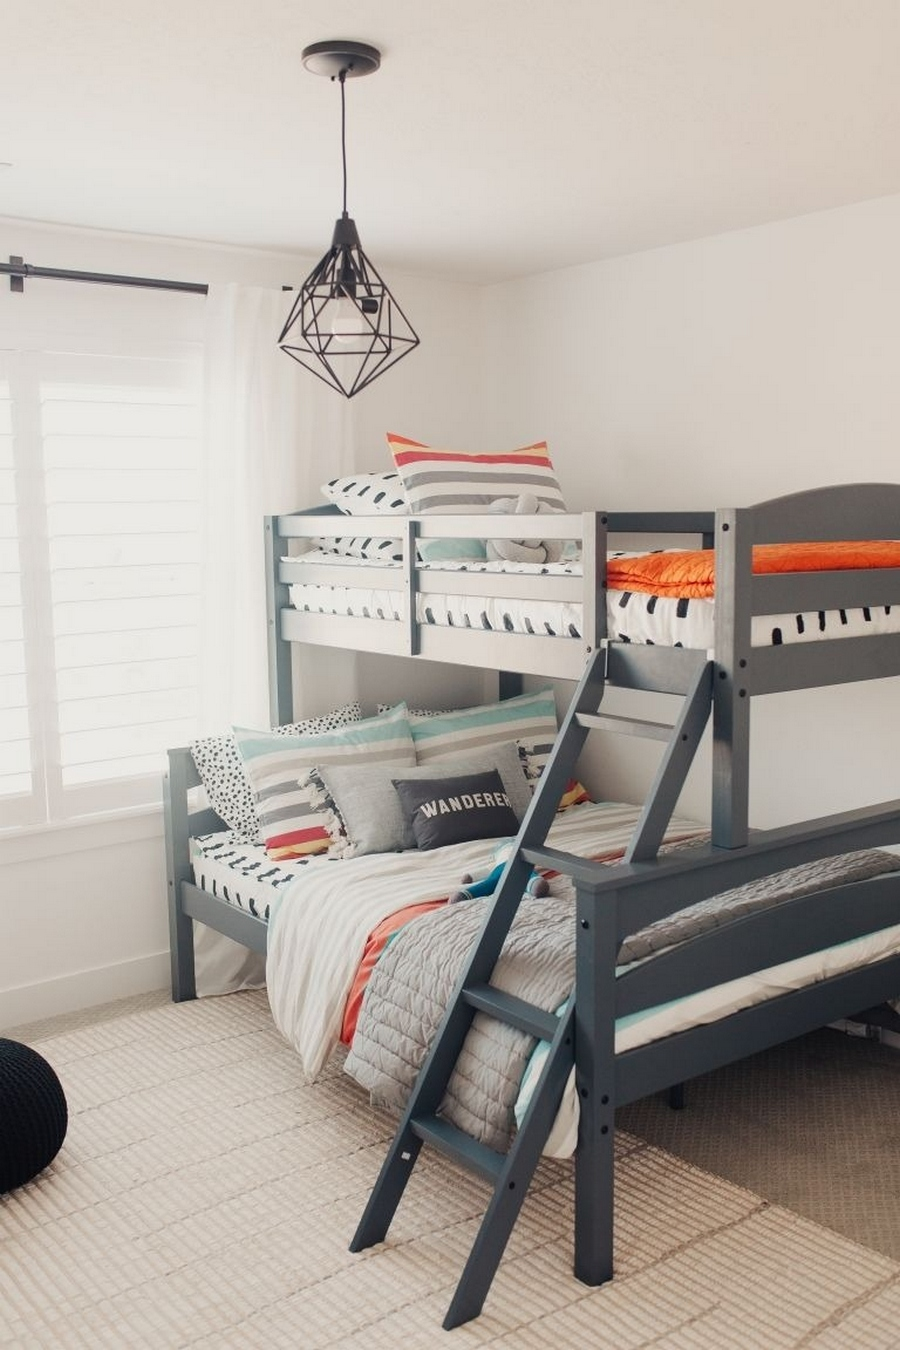 31 Most Popular Kids Bunk Beds Design Ideas Make Sleeping Fun For Your Kids 3